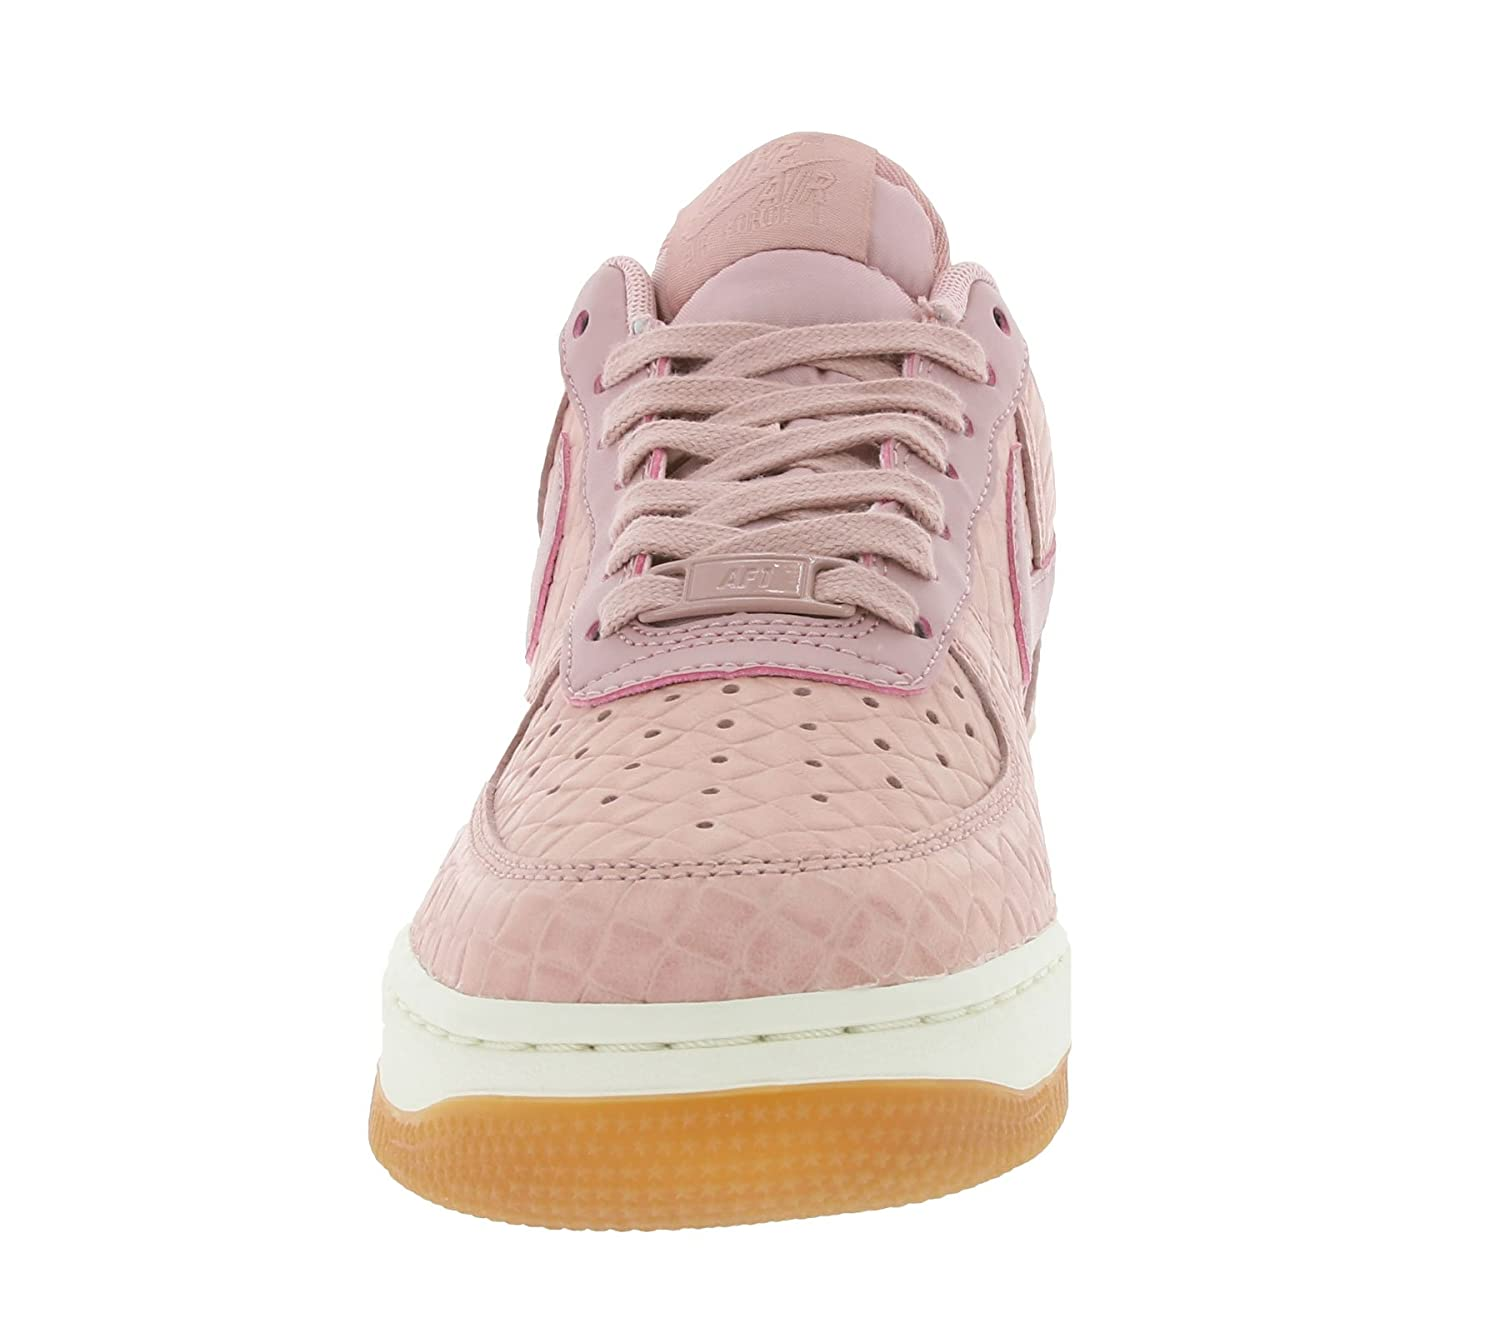 uk availability ecea8 67cf1 Nike Womens Air Force 1 07 PRM Trainers 616725 Sneakers Shoes (uk 6.5 us 9  eu 40.5, pink glaze 601)  Amazon.co.uk  Shoes   Bags